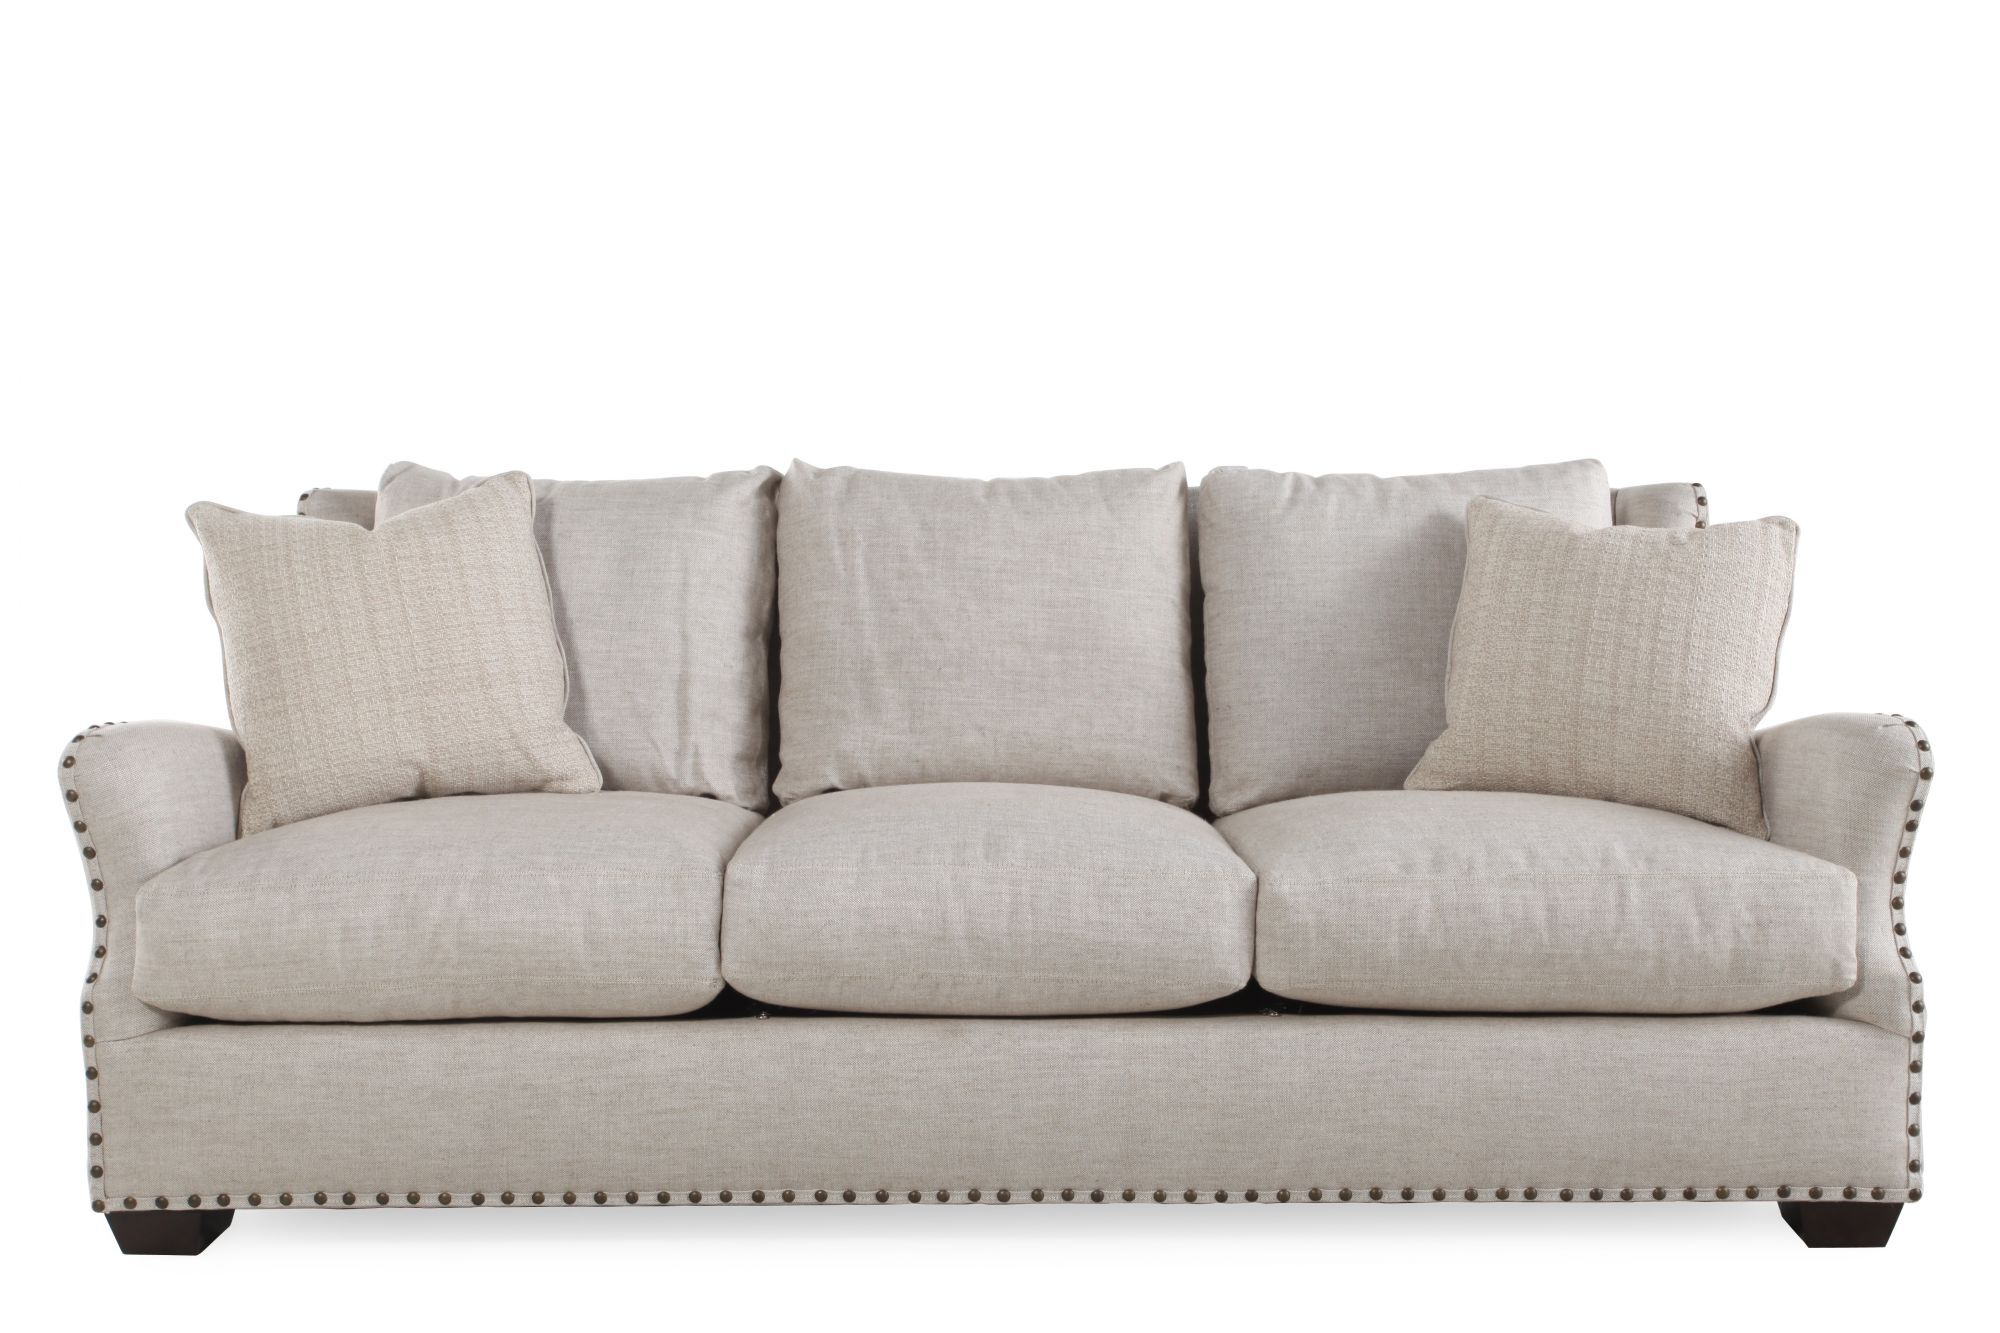 Universal Connor Sofa Part 83